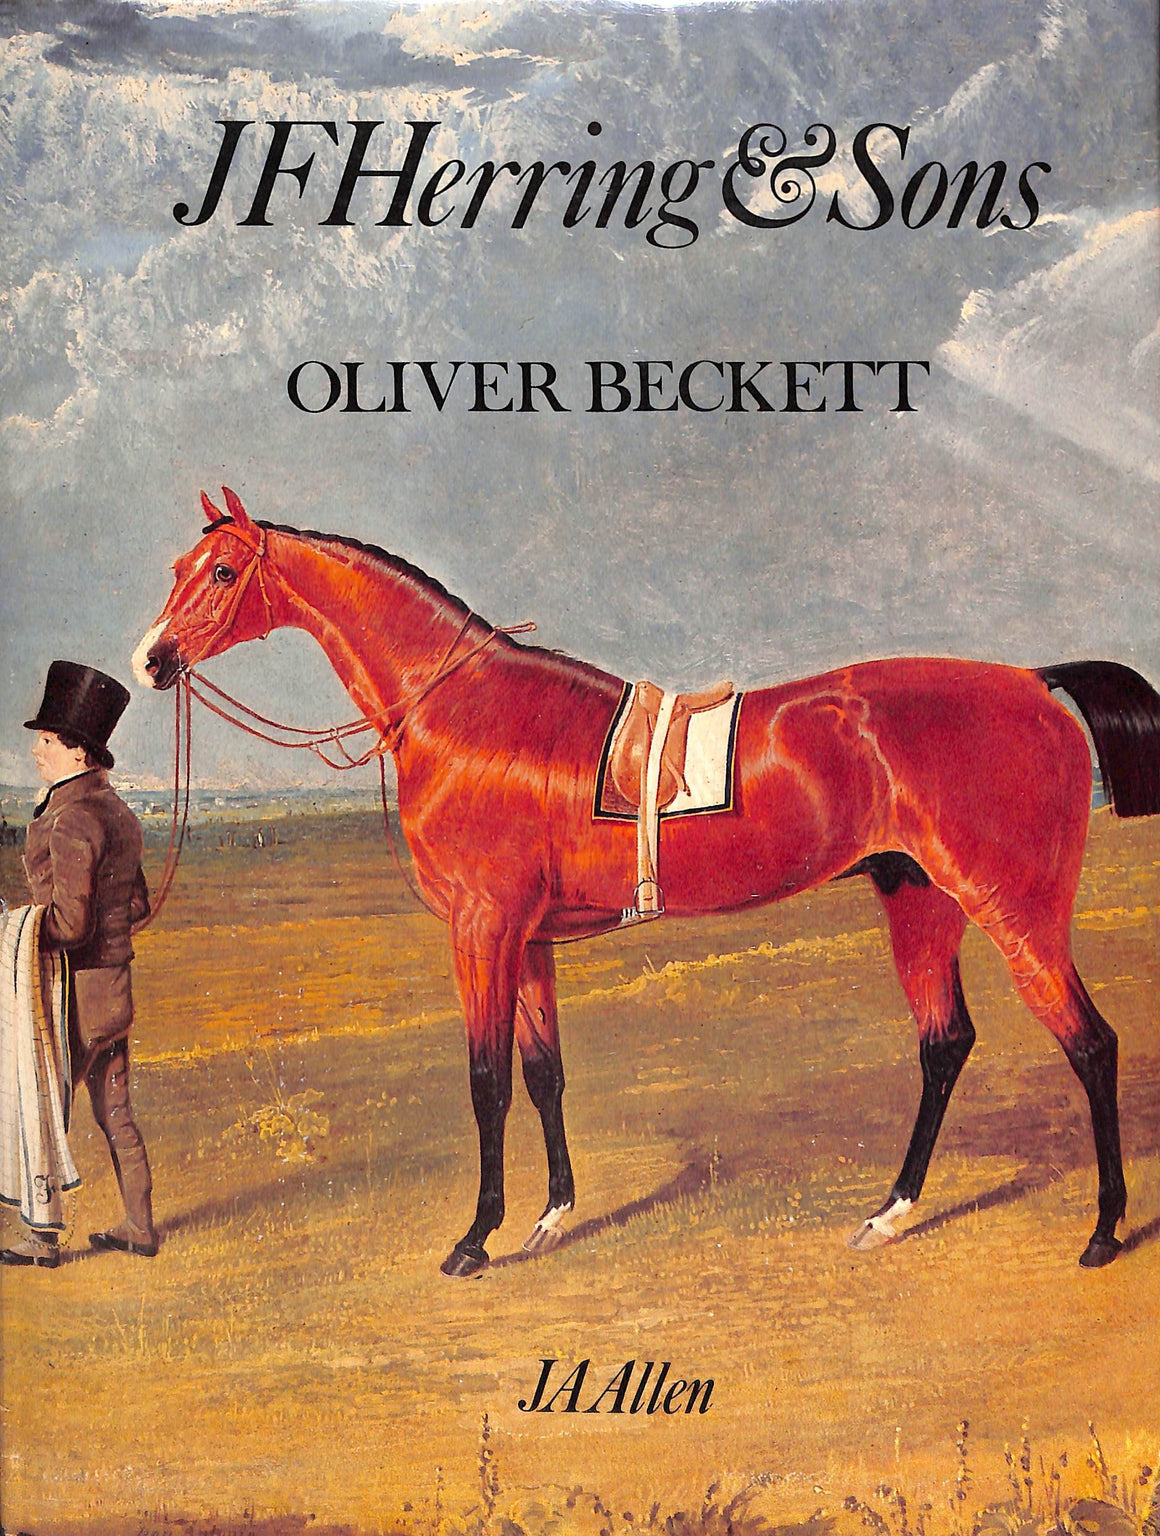 JF Herring & Sons by Olivert Beckett